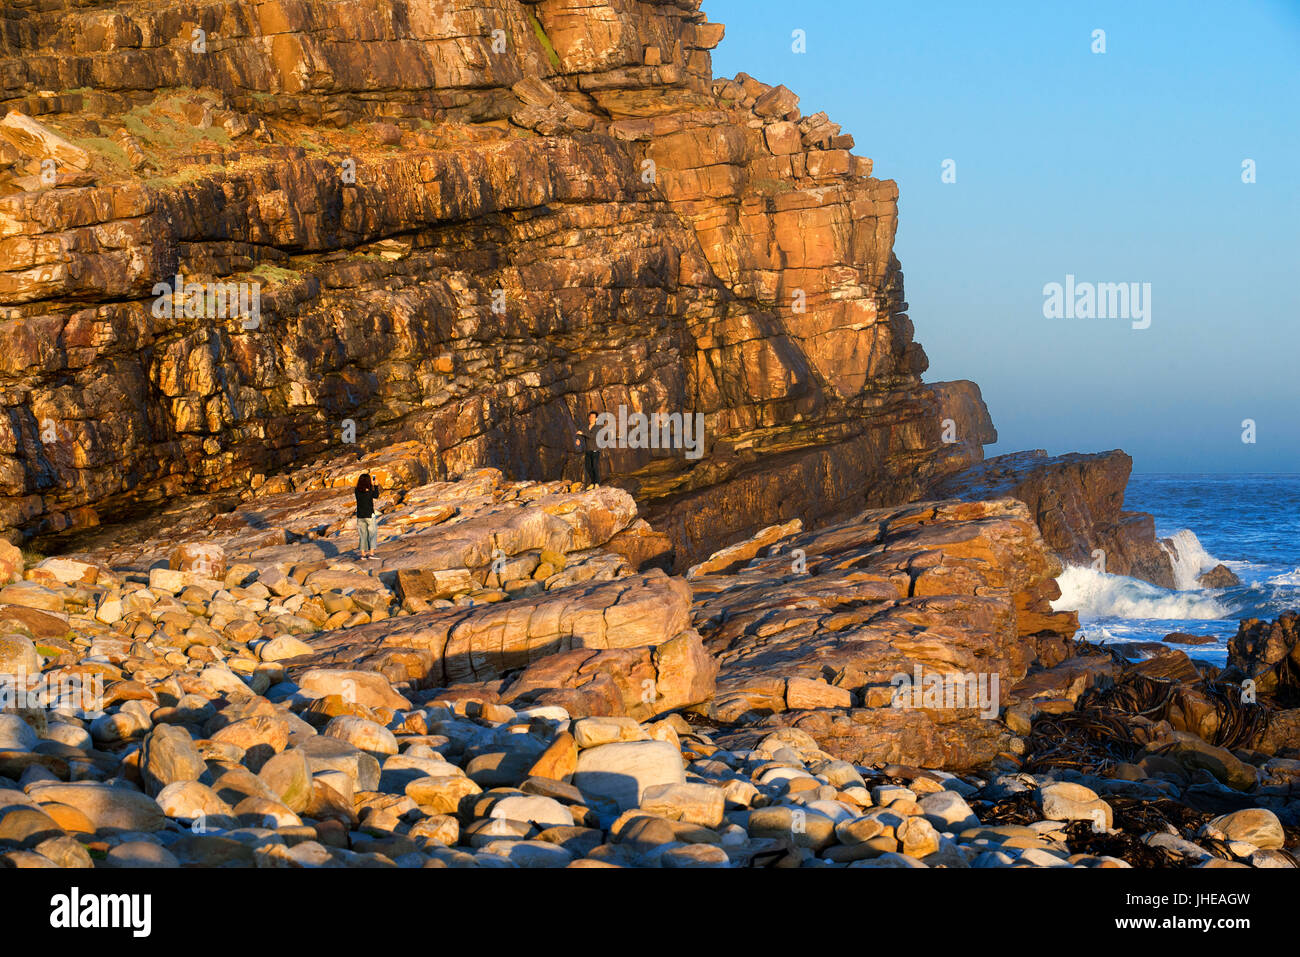 Cape of Good Hope in sunset, South Africa, Western Cape, Cape of Good Hope National Park - Stock Image